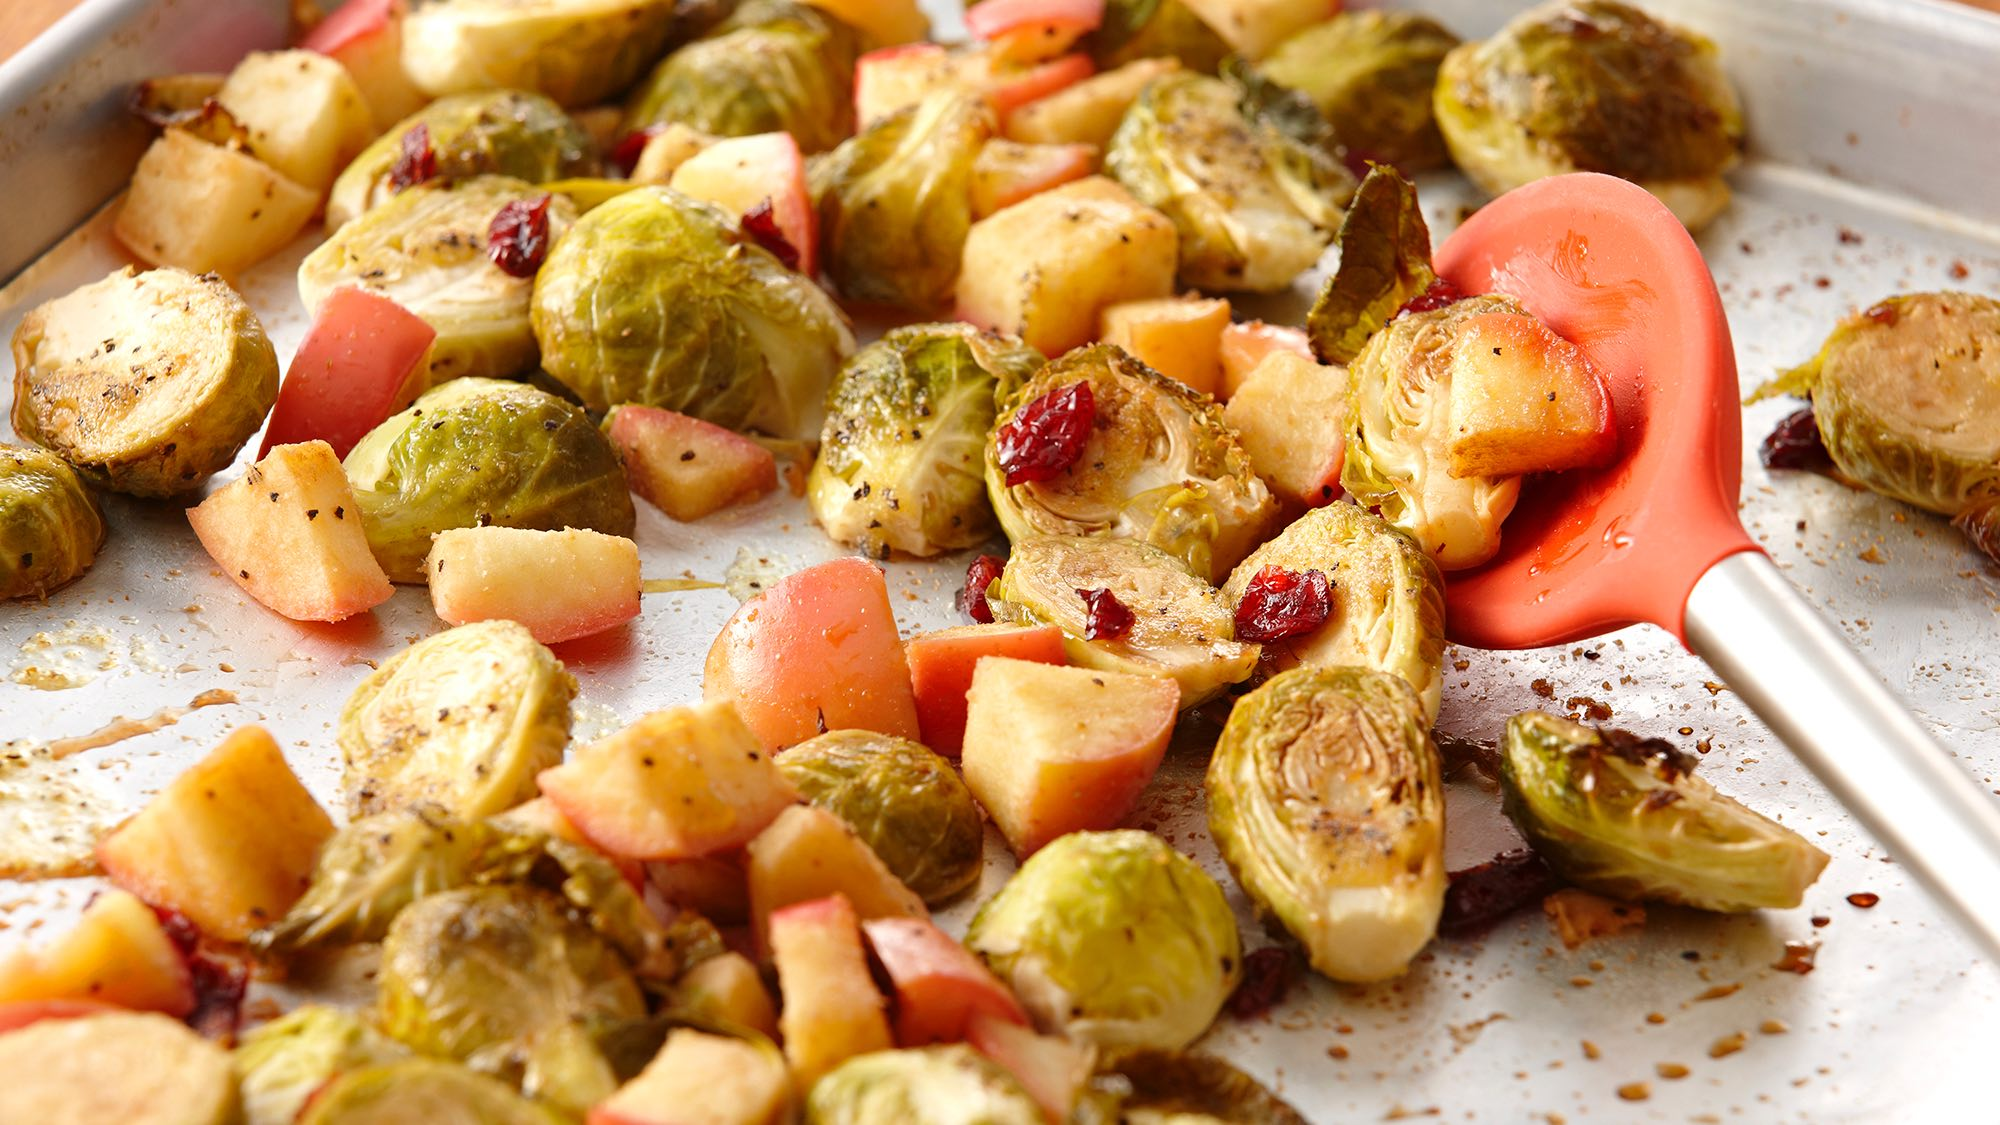 McCormick Roasted Brussels Sprouts and Apples